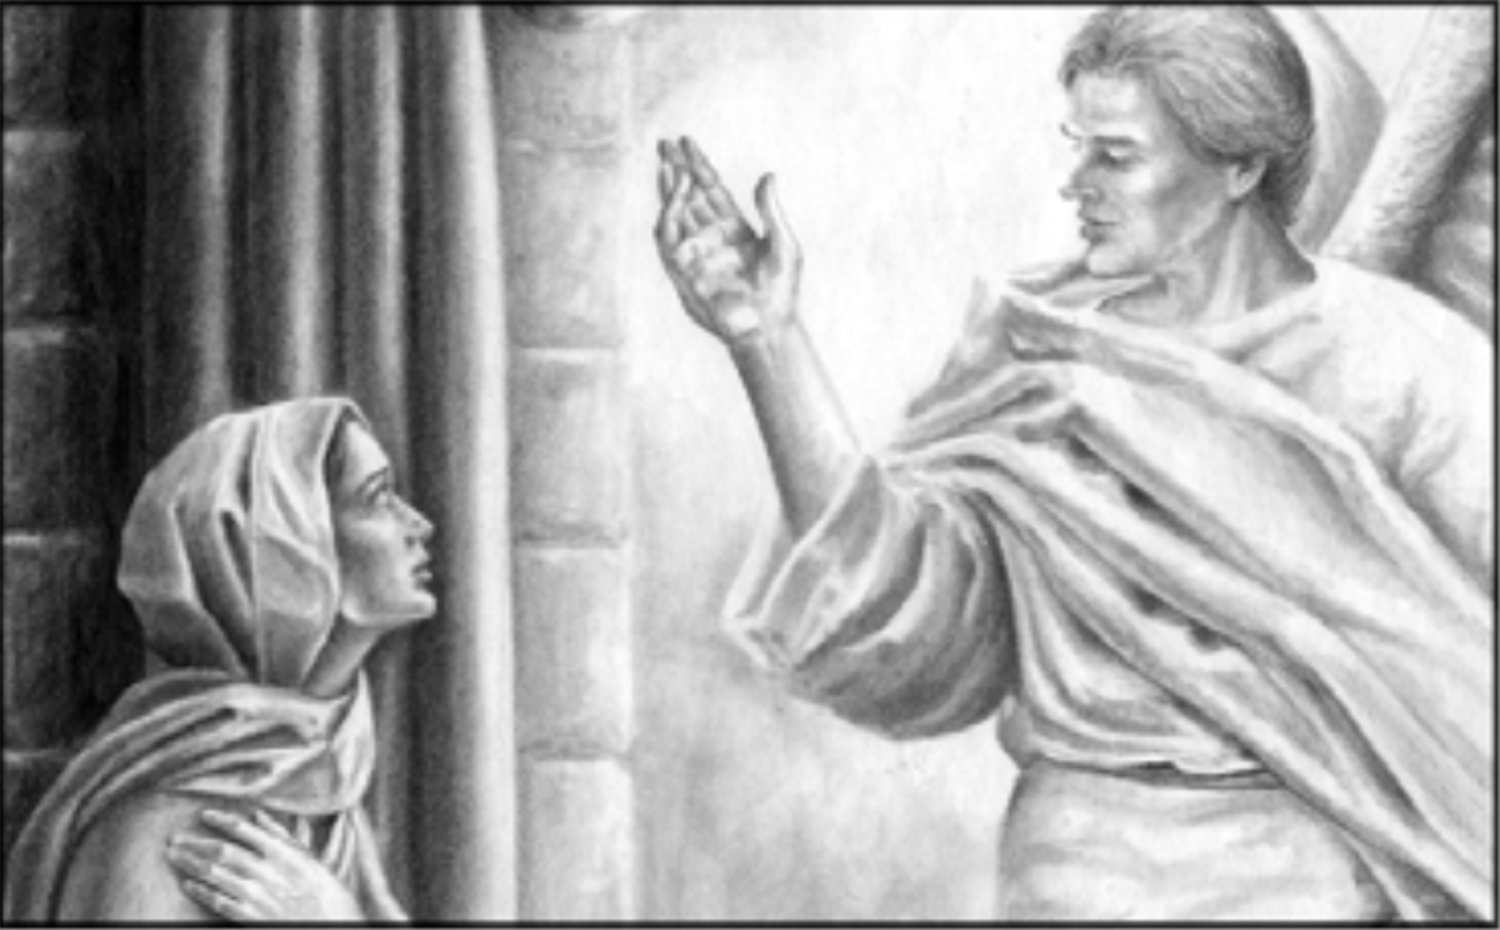 Angel speaking to a woman